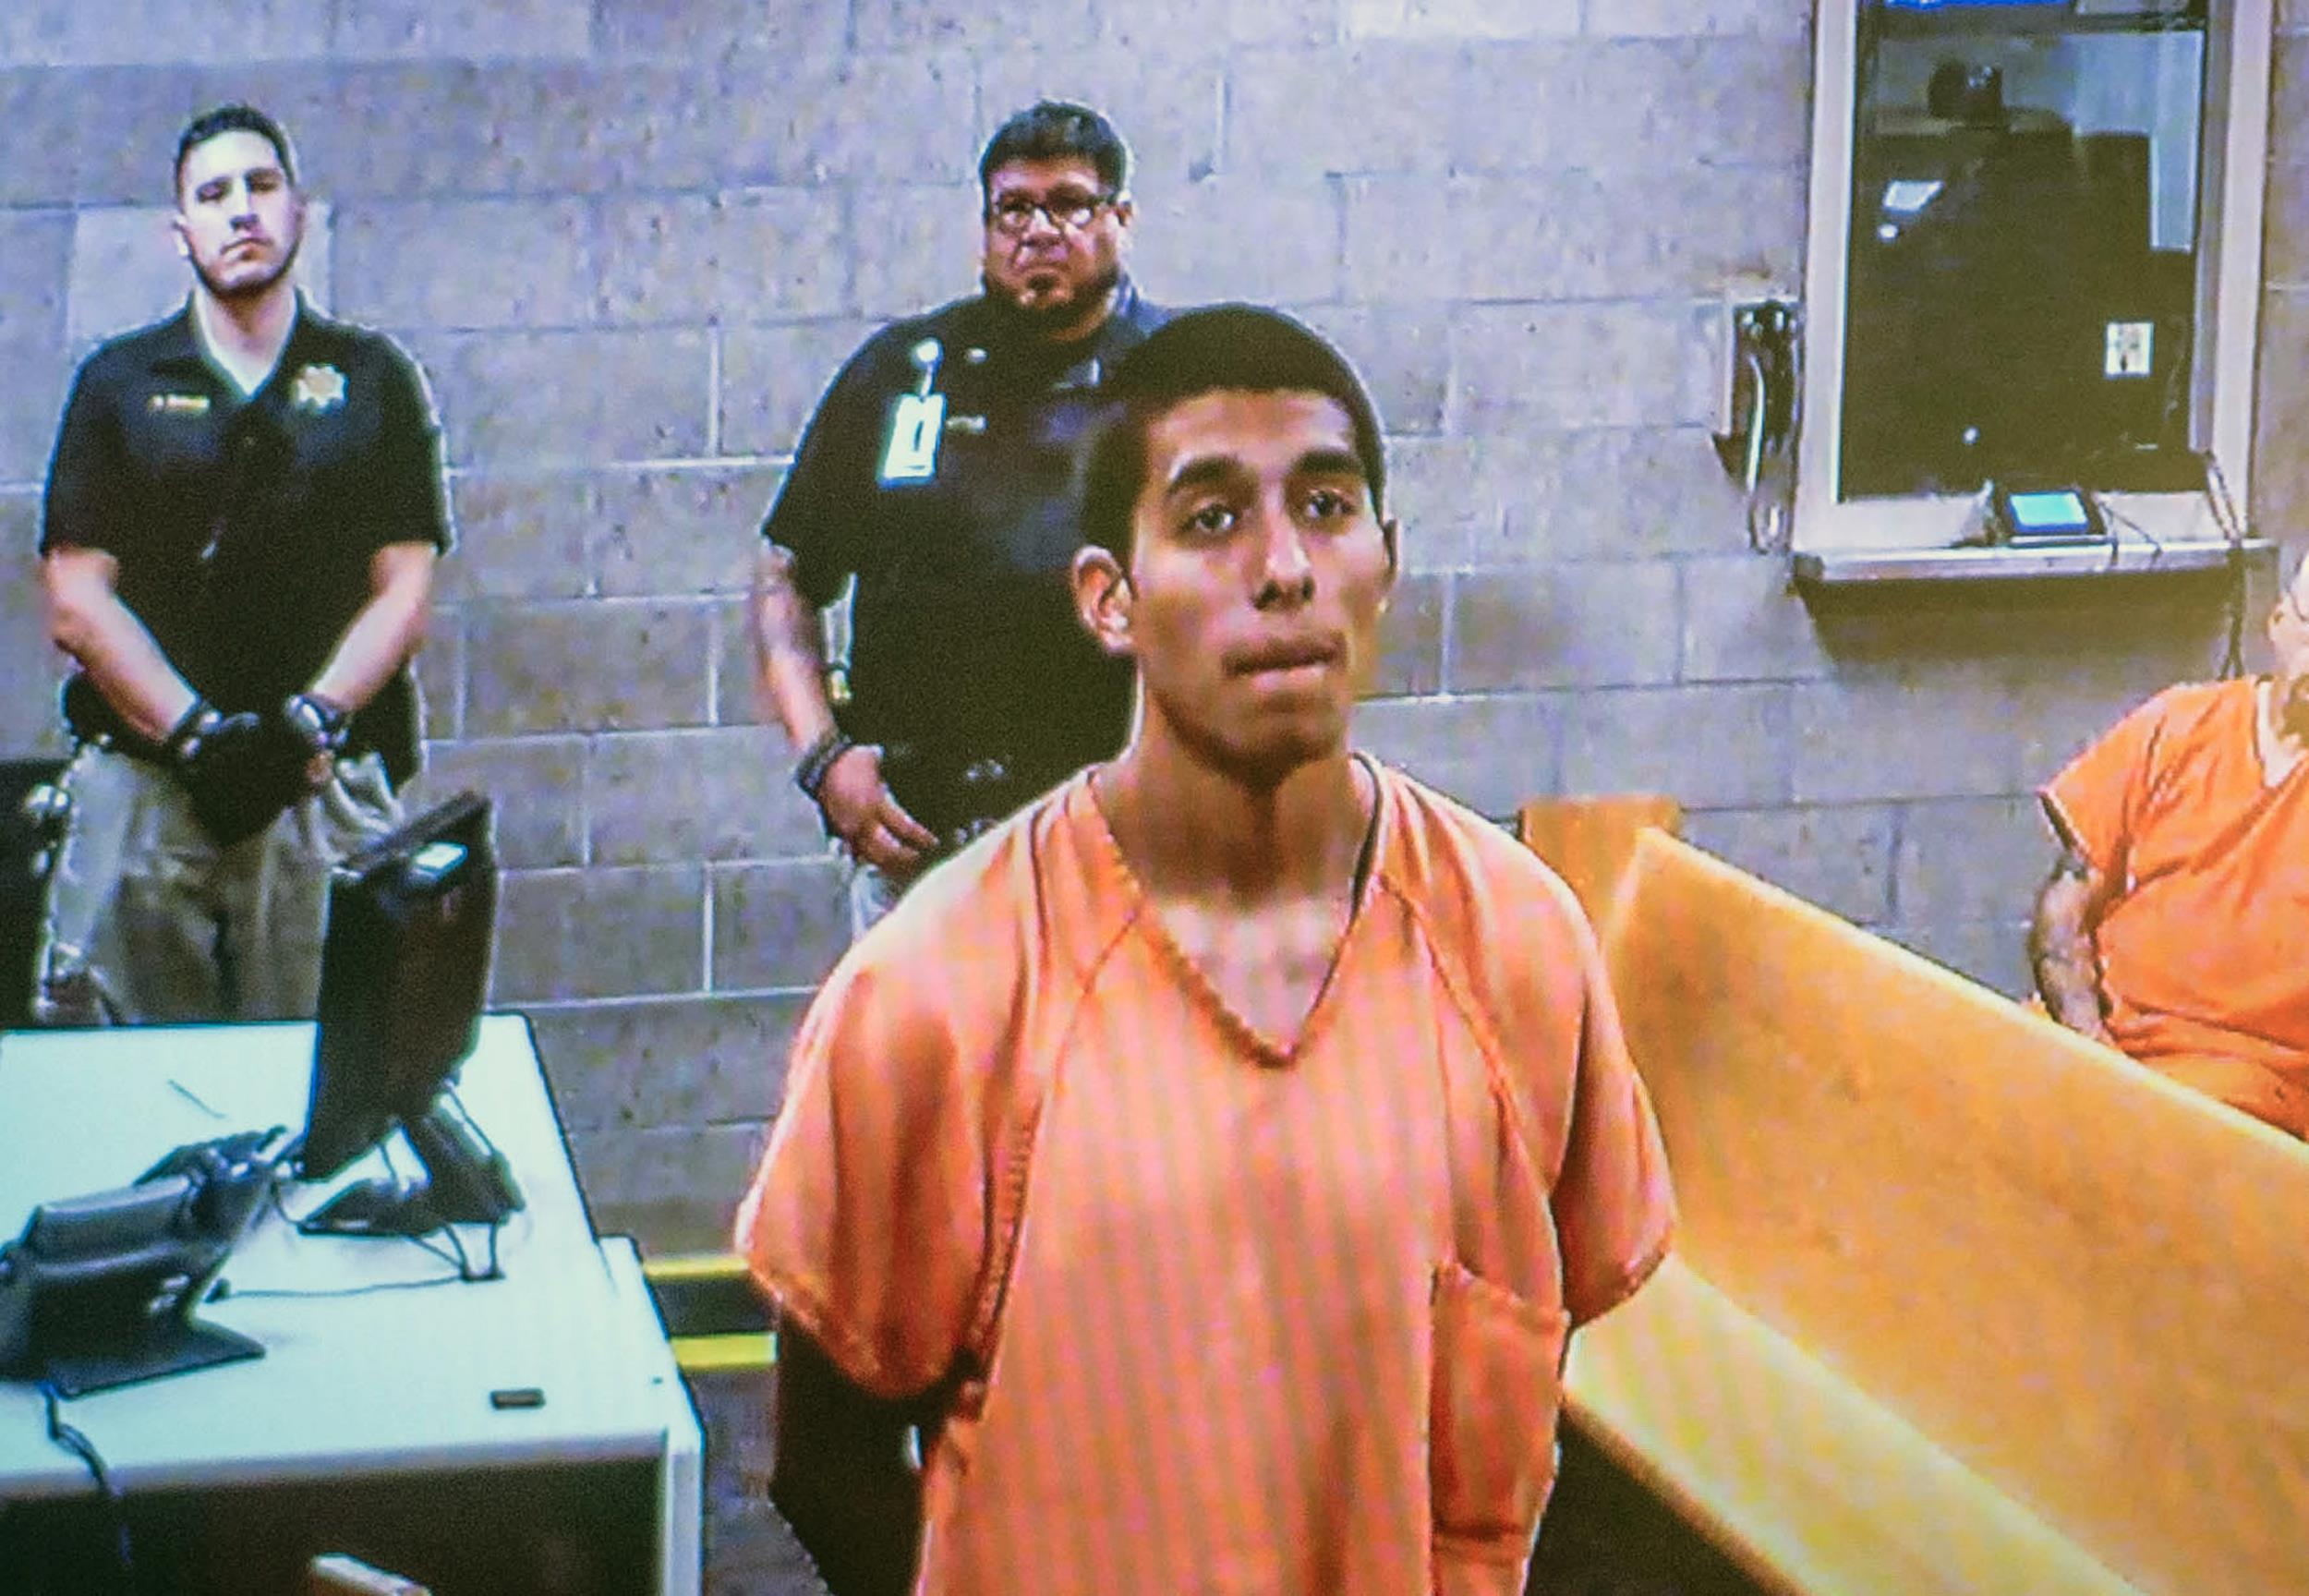 Image: Alex Rios,18, makes an appearance on video for an arraignment in metro court July 21